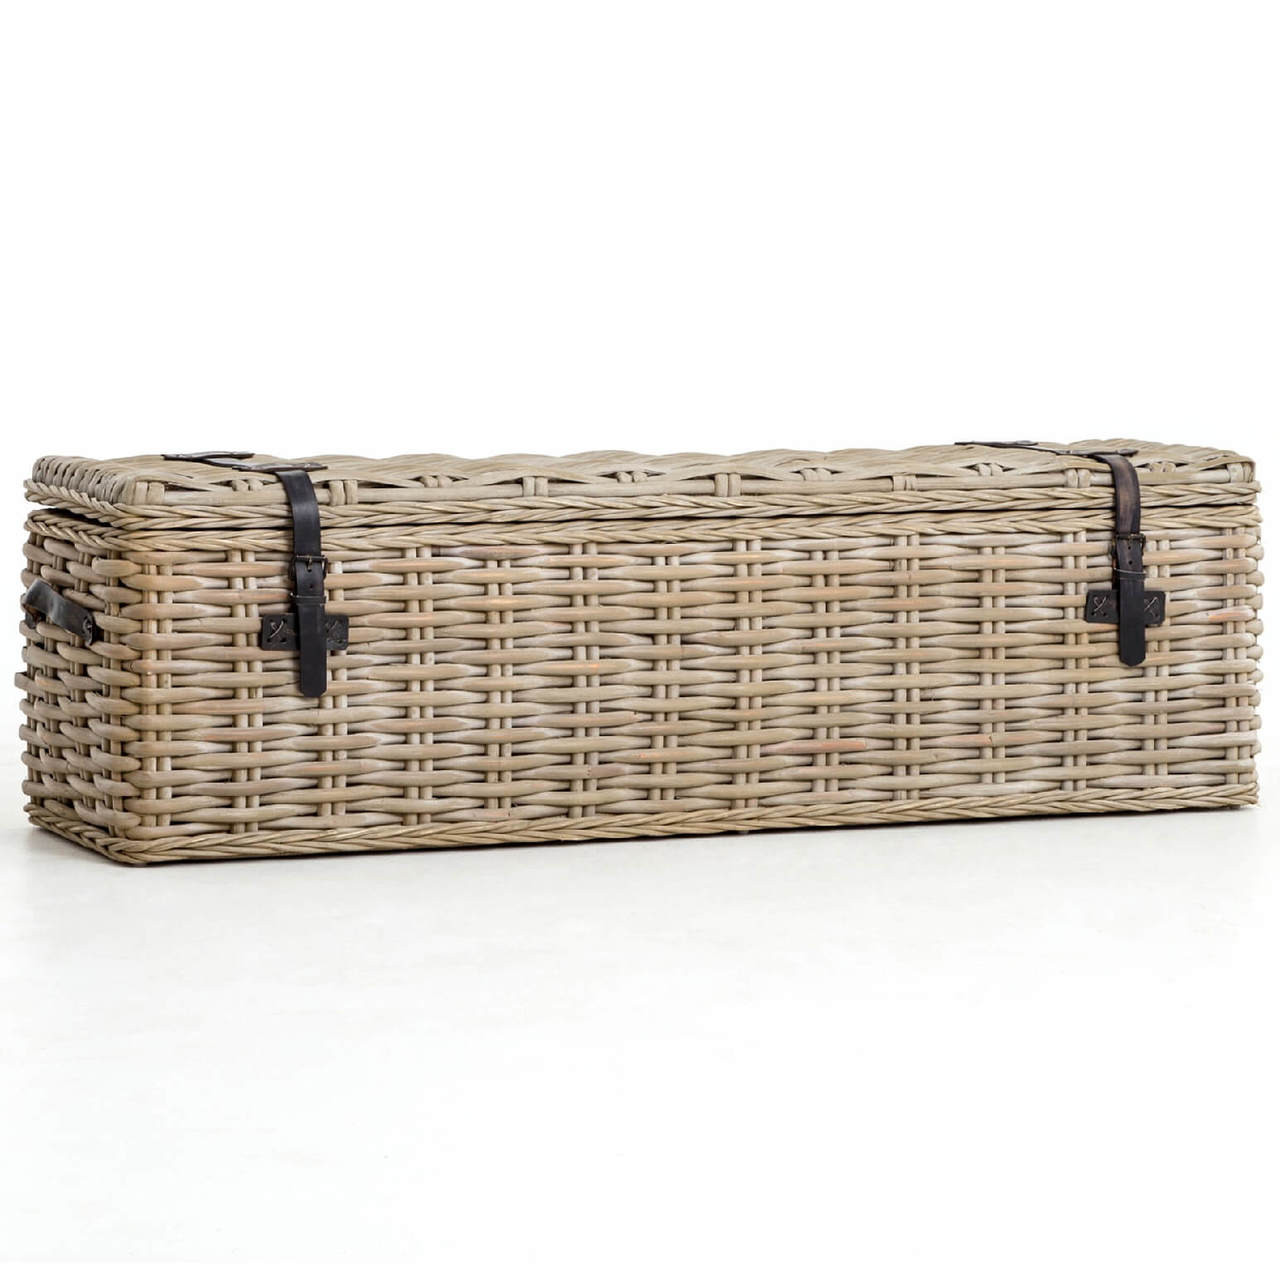 Coastal Vintage Grey Woven Wicker Storage Trunk